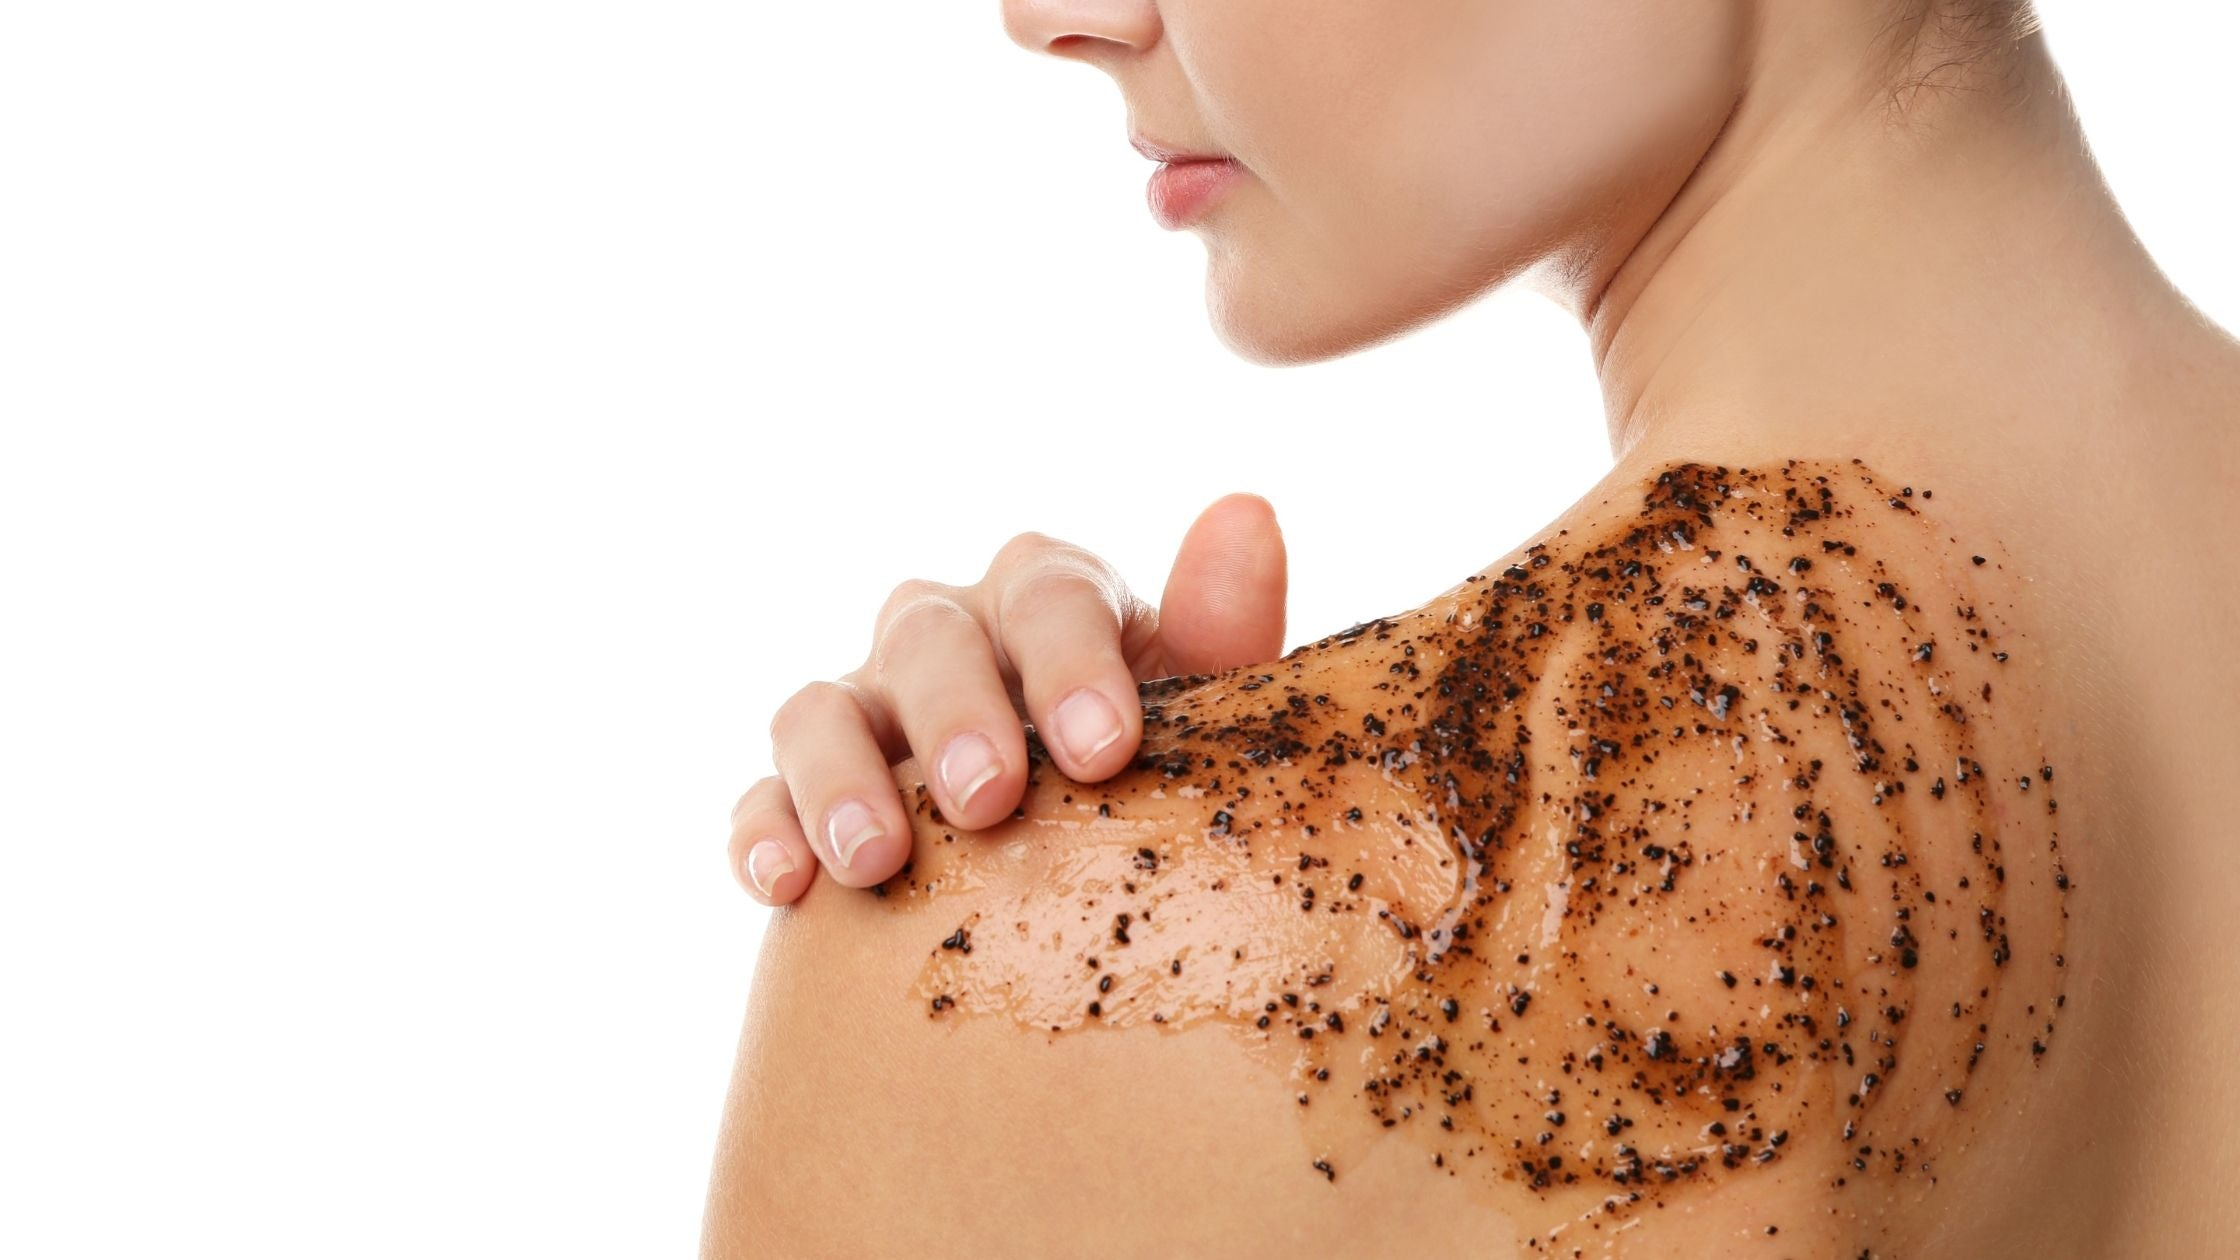 About Exfoliating The Body